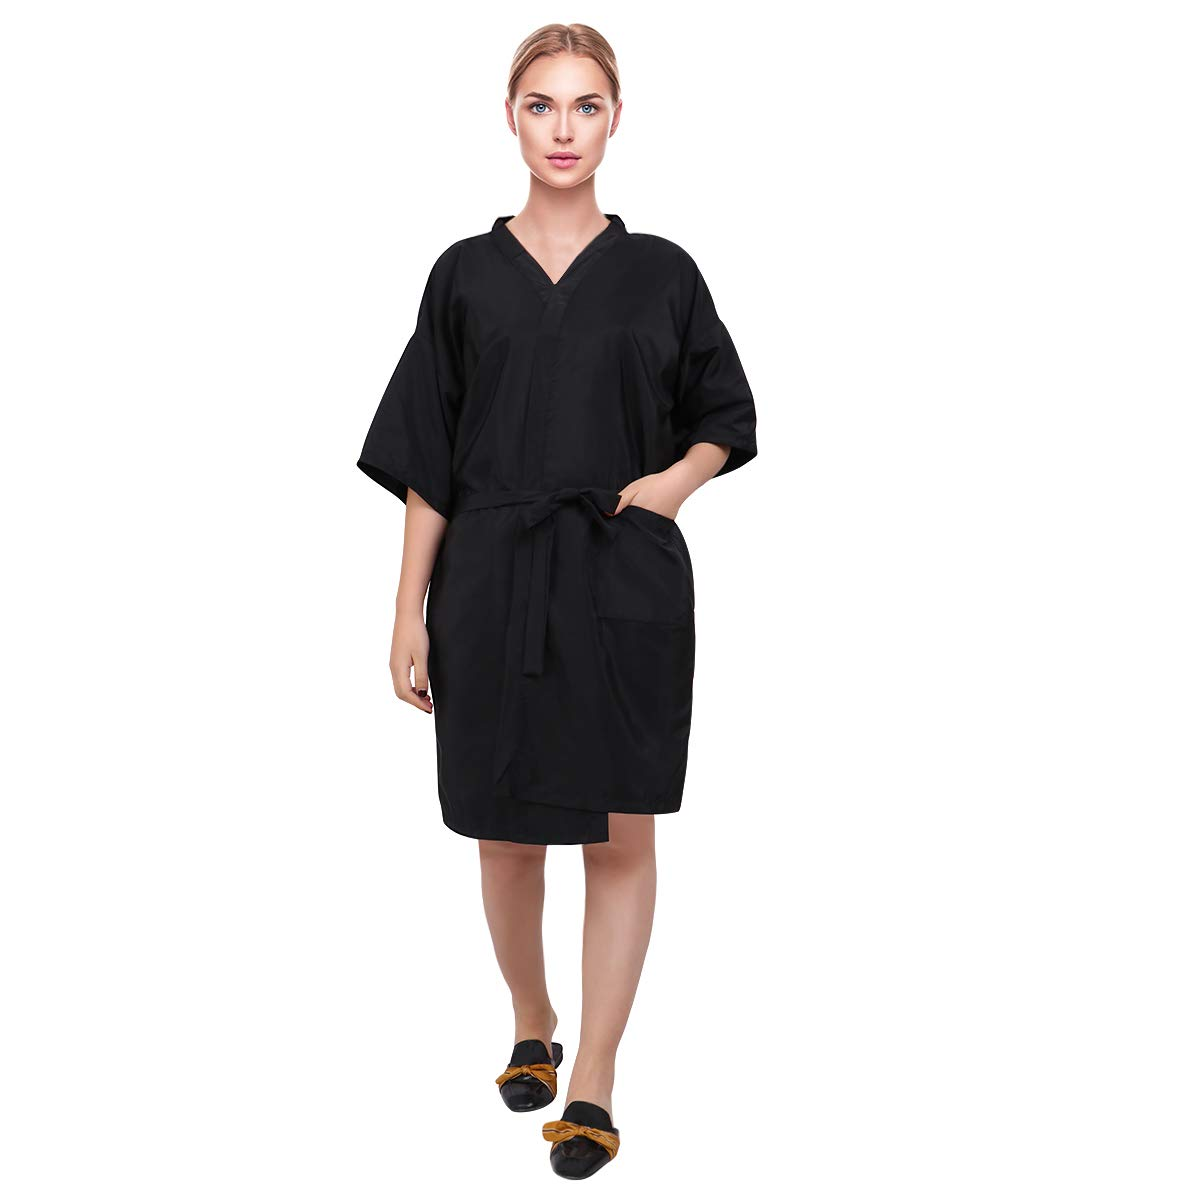 Lurrose Salon Client Gown Waterproof Hair Salon Smock Hairdressing Clothes Kimono Style Haircut Apron for SPA Hotel(Black) by Lurrose